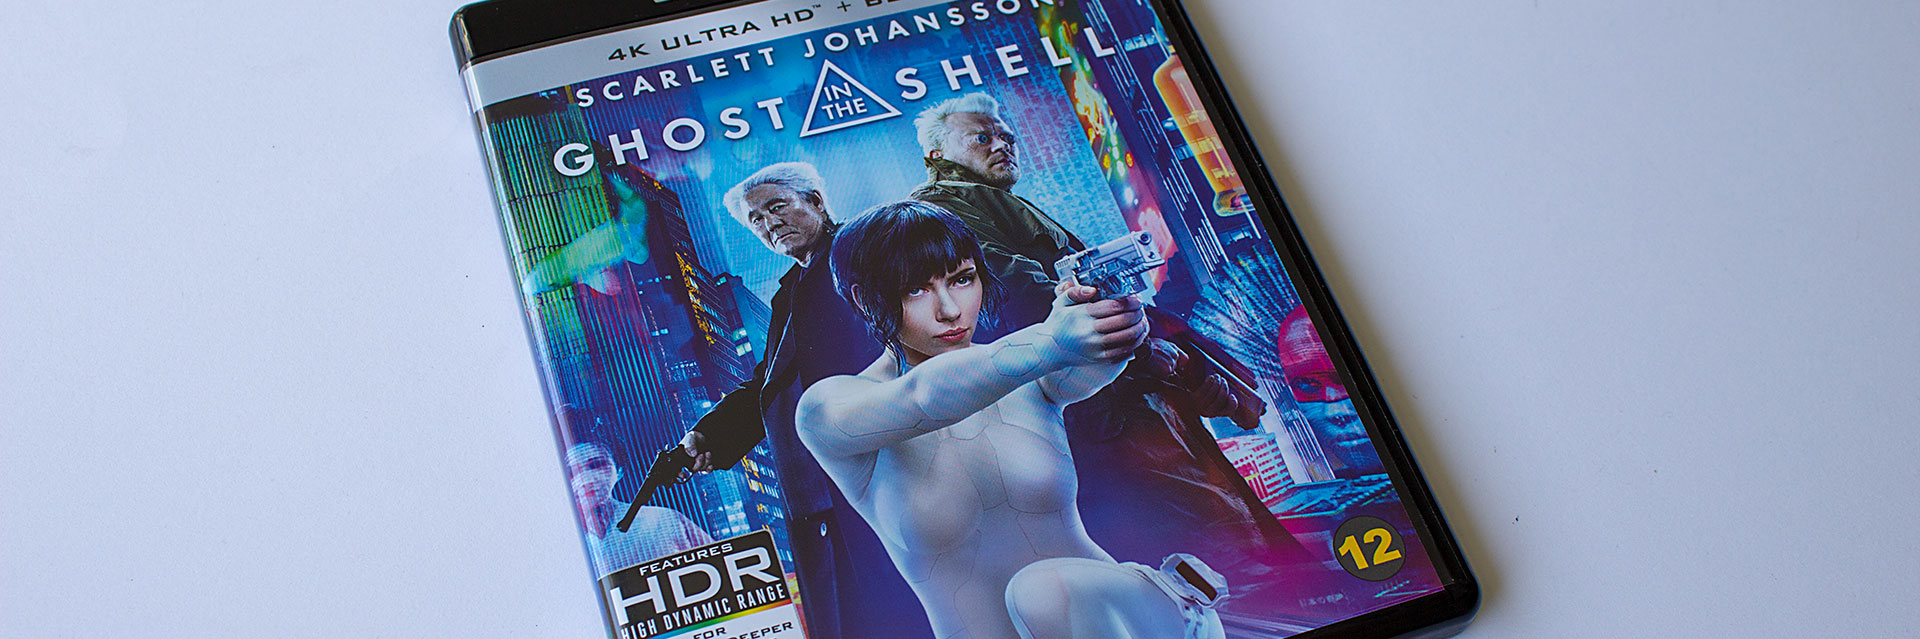 Ghost in the Shell (2017) 4K Ultra HD Blu-ray -arvostelu